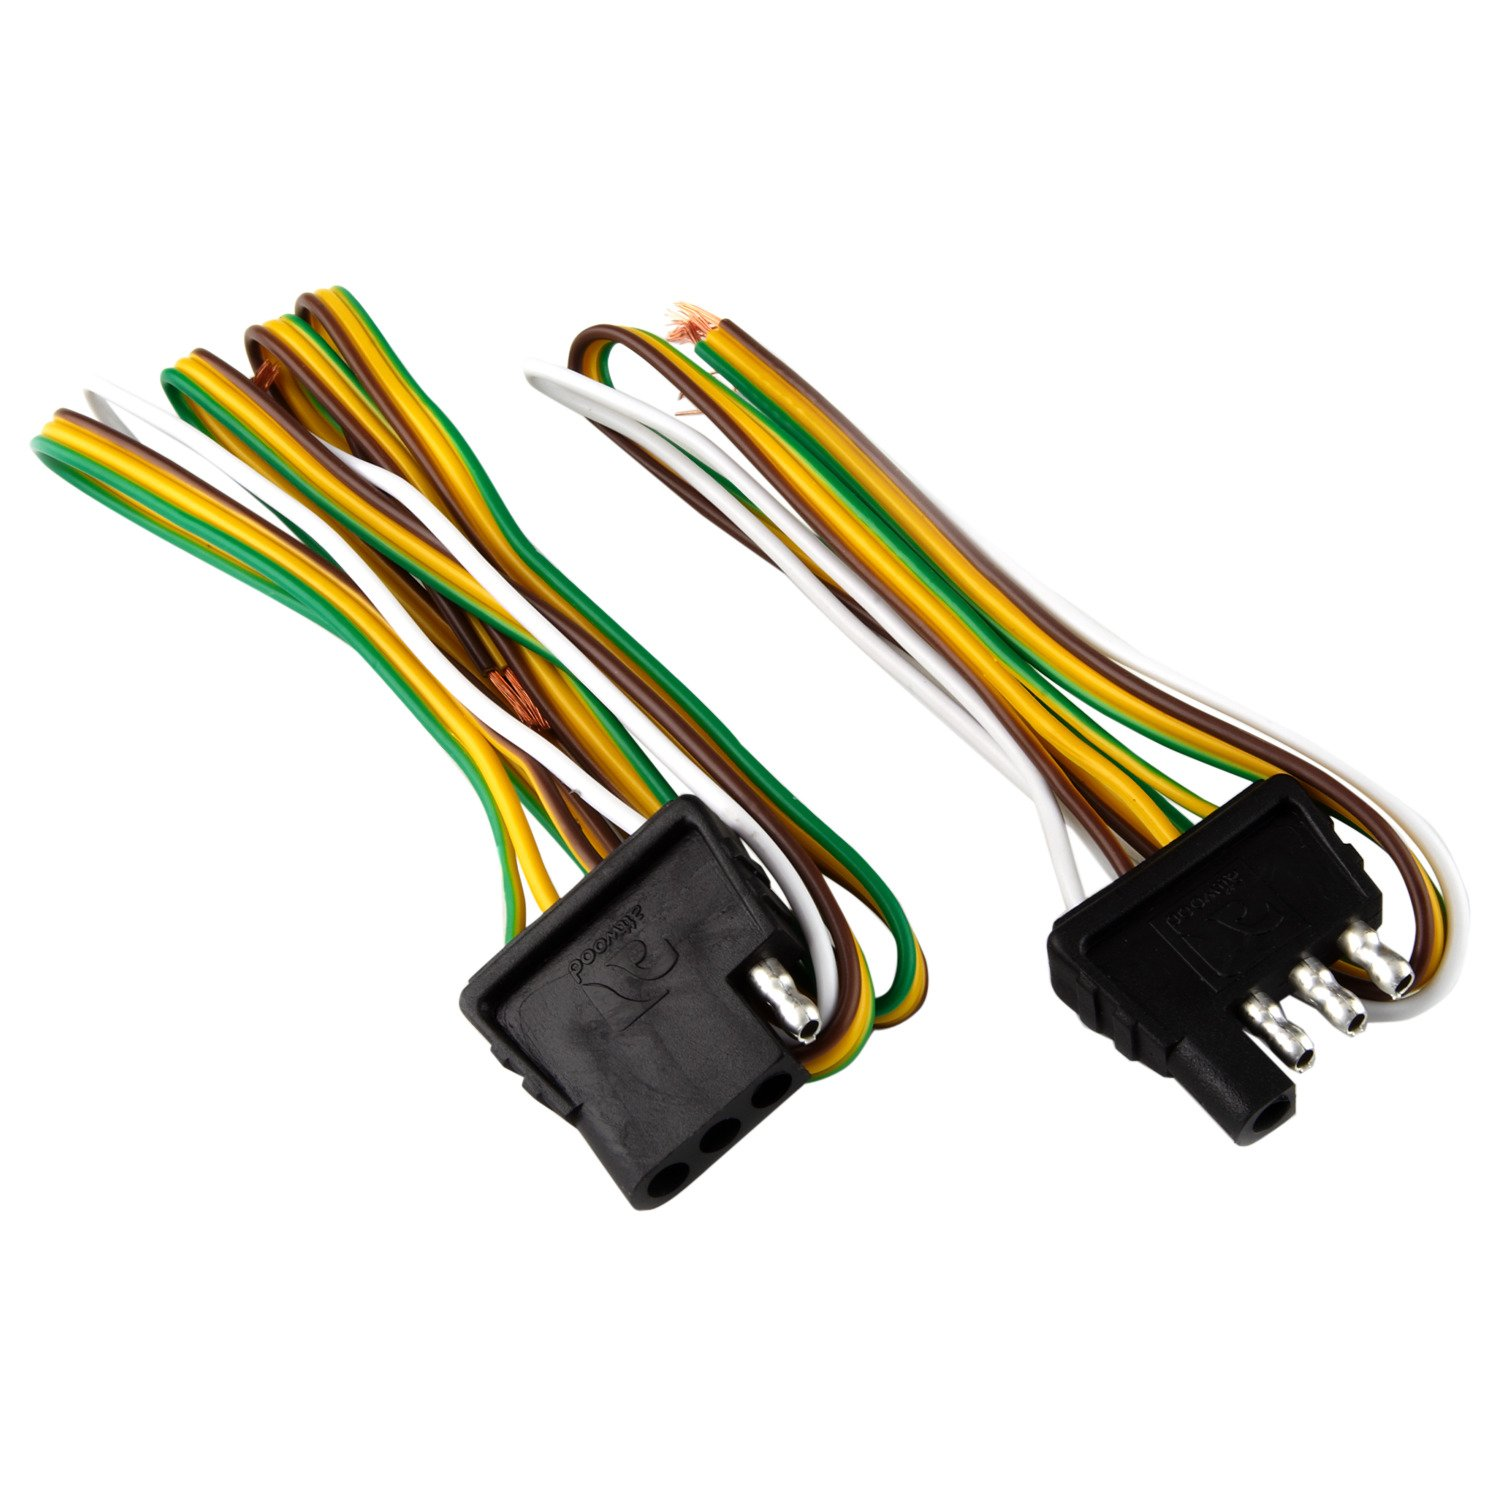 hight resolution of attwood 4 way flat wiring harness kit for vehicles and trailers 4 way wiring harness diagram 4 way wiring harness